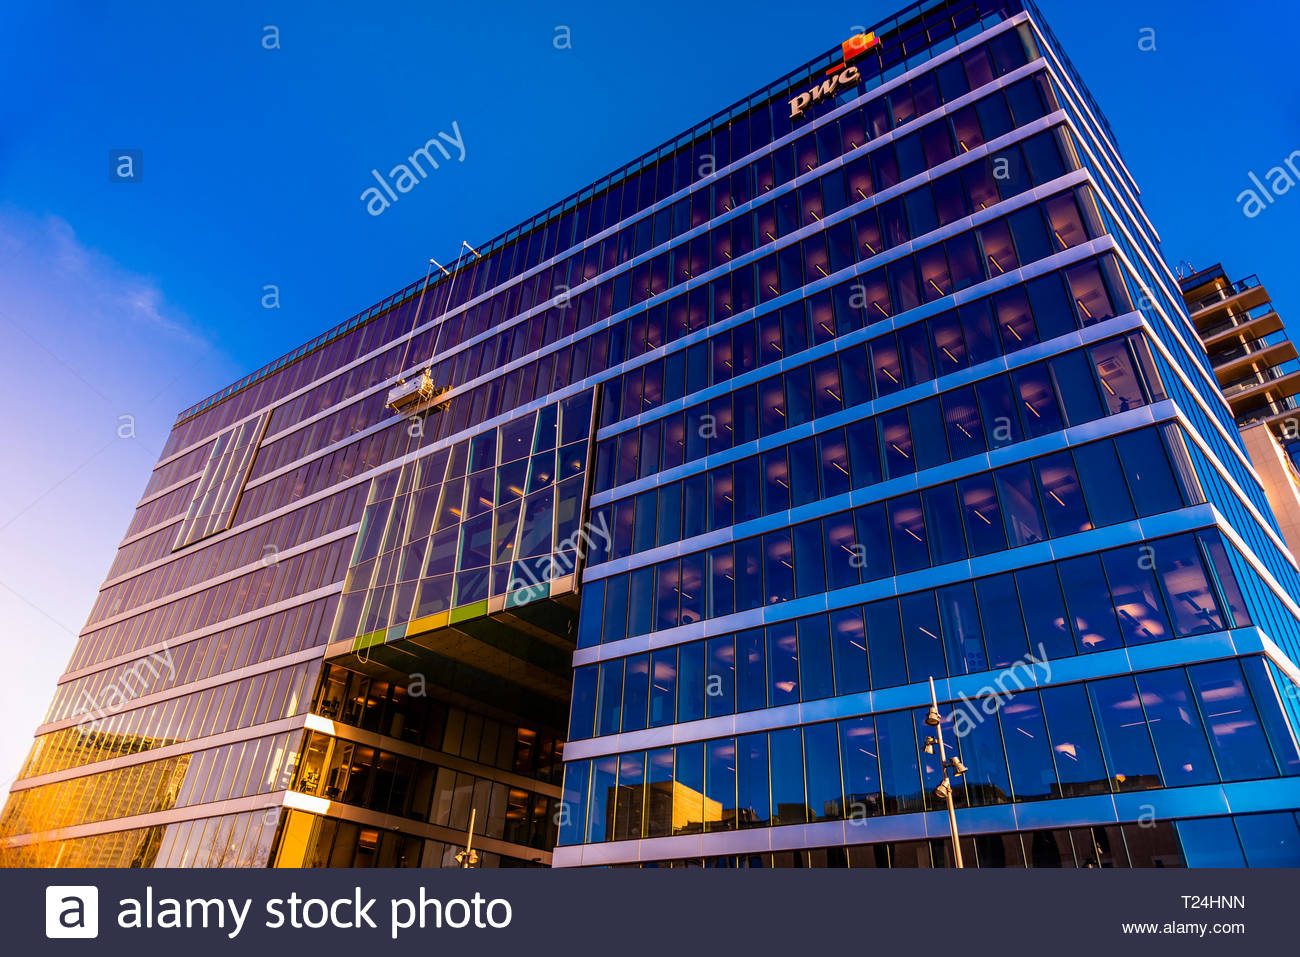 One of the skyscrapers of the Barcode project in Bjorivka district of Oslo, Norway, Dronning Eufemias gate 16, by architect Dark Arkitekter. - Stock Image